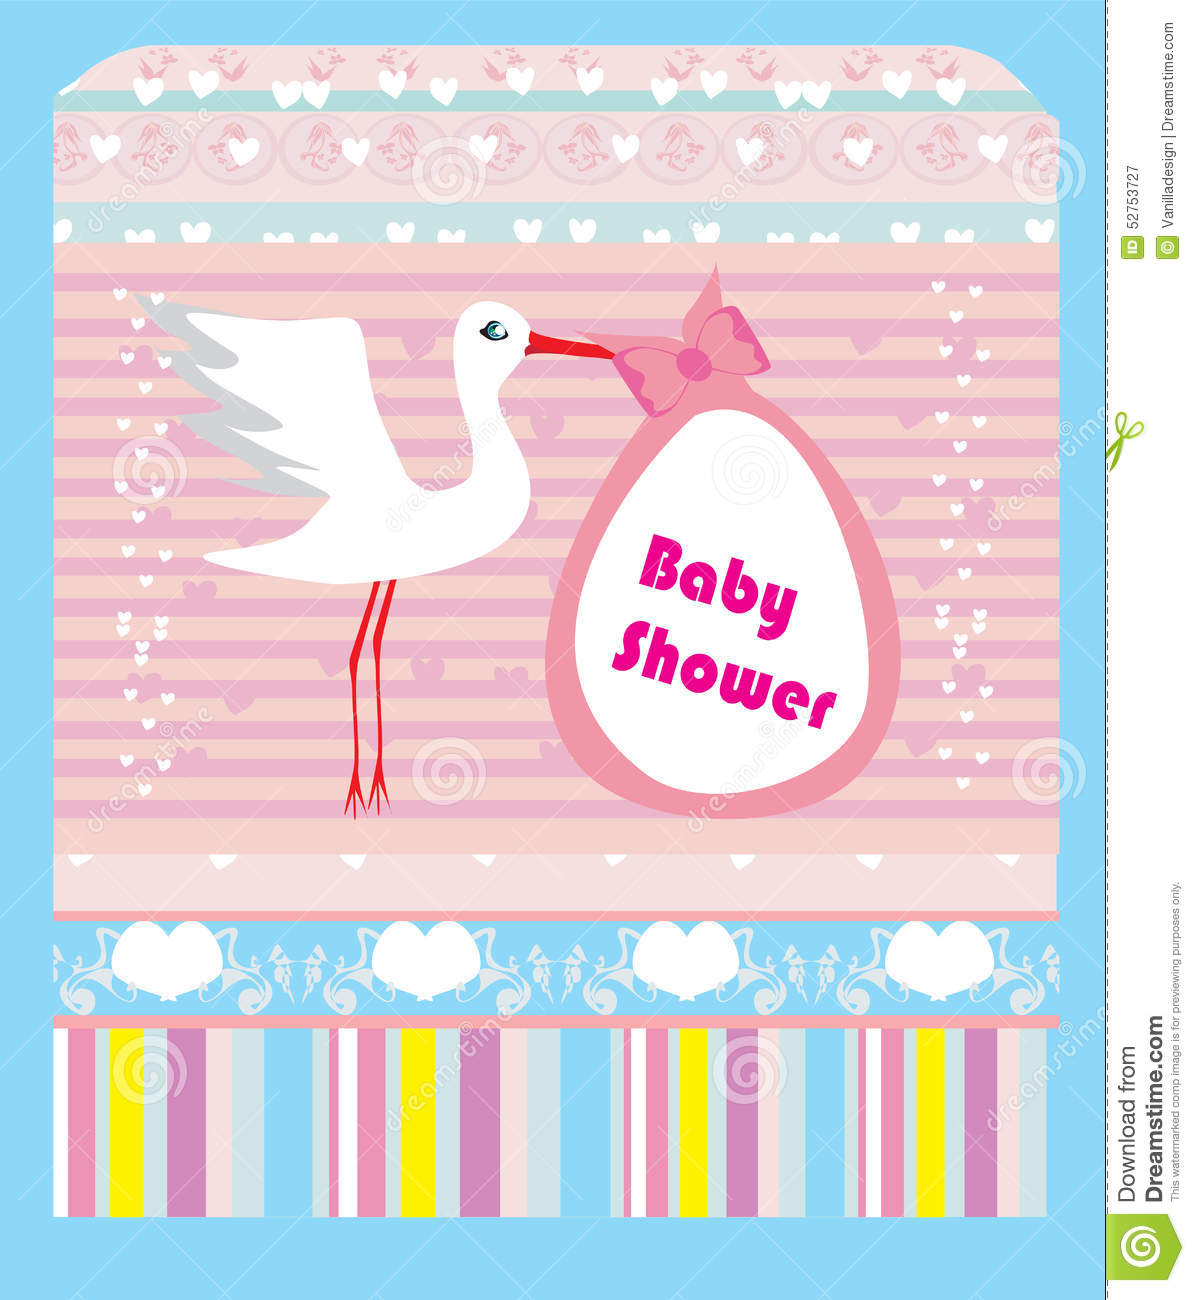 baby shower greeting card stock vector image 52753727